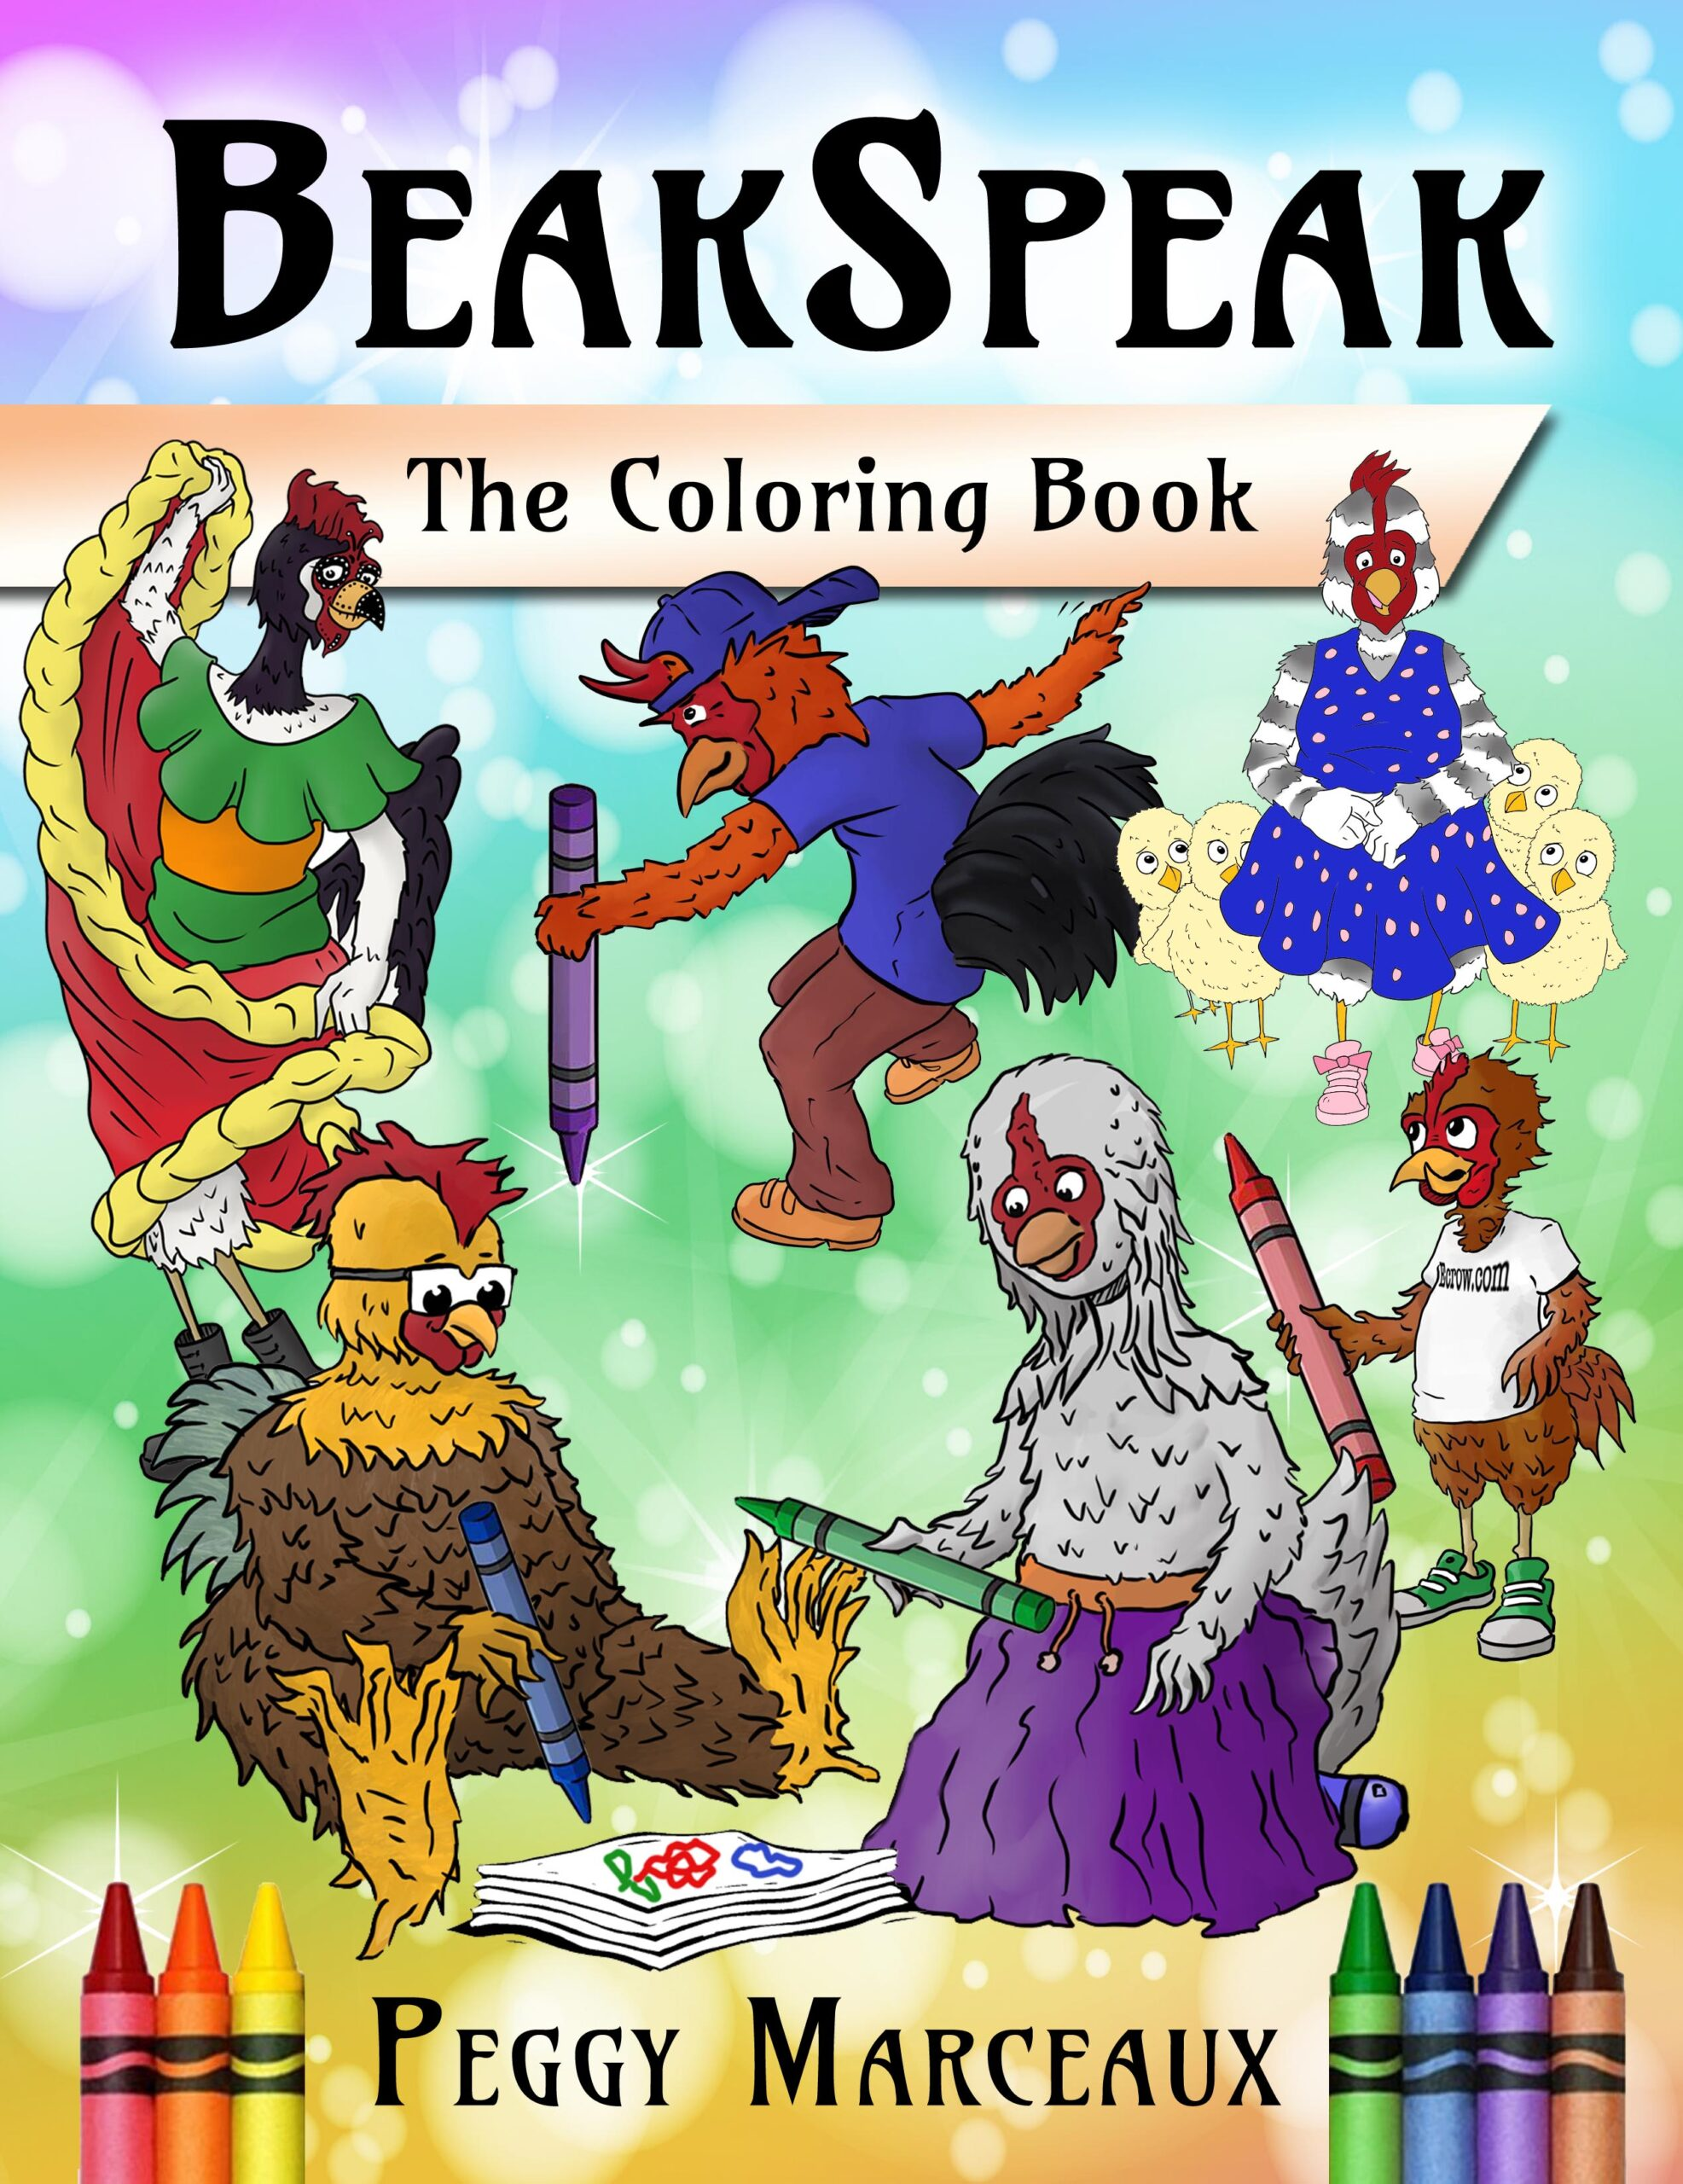 BeakSpeak: The Coloring Book by author Peggy Marceaux